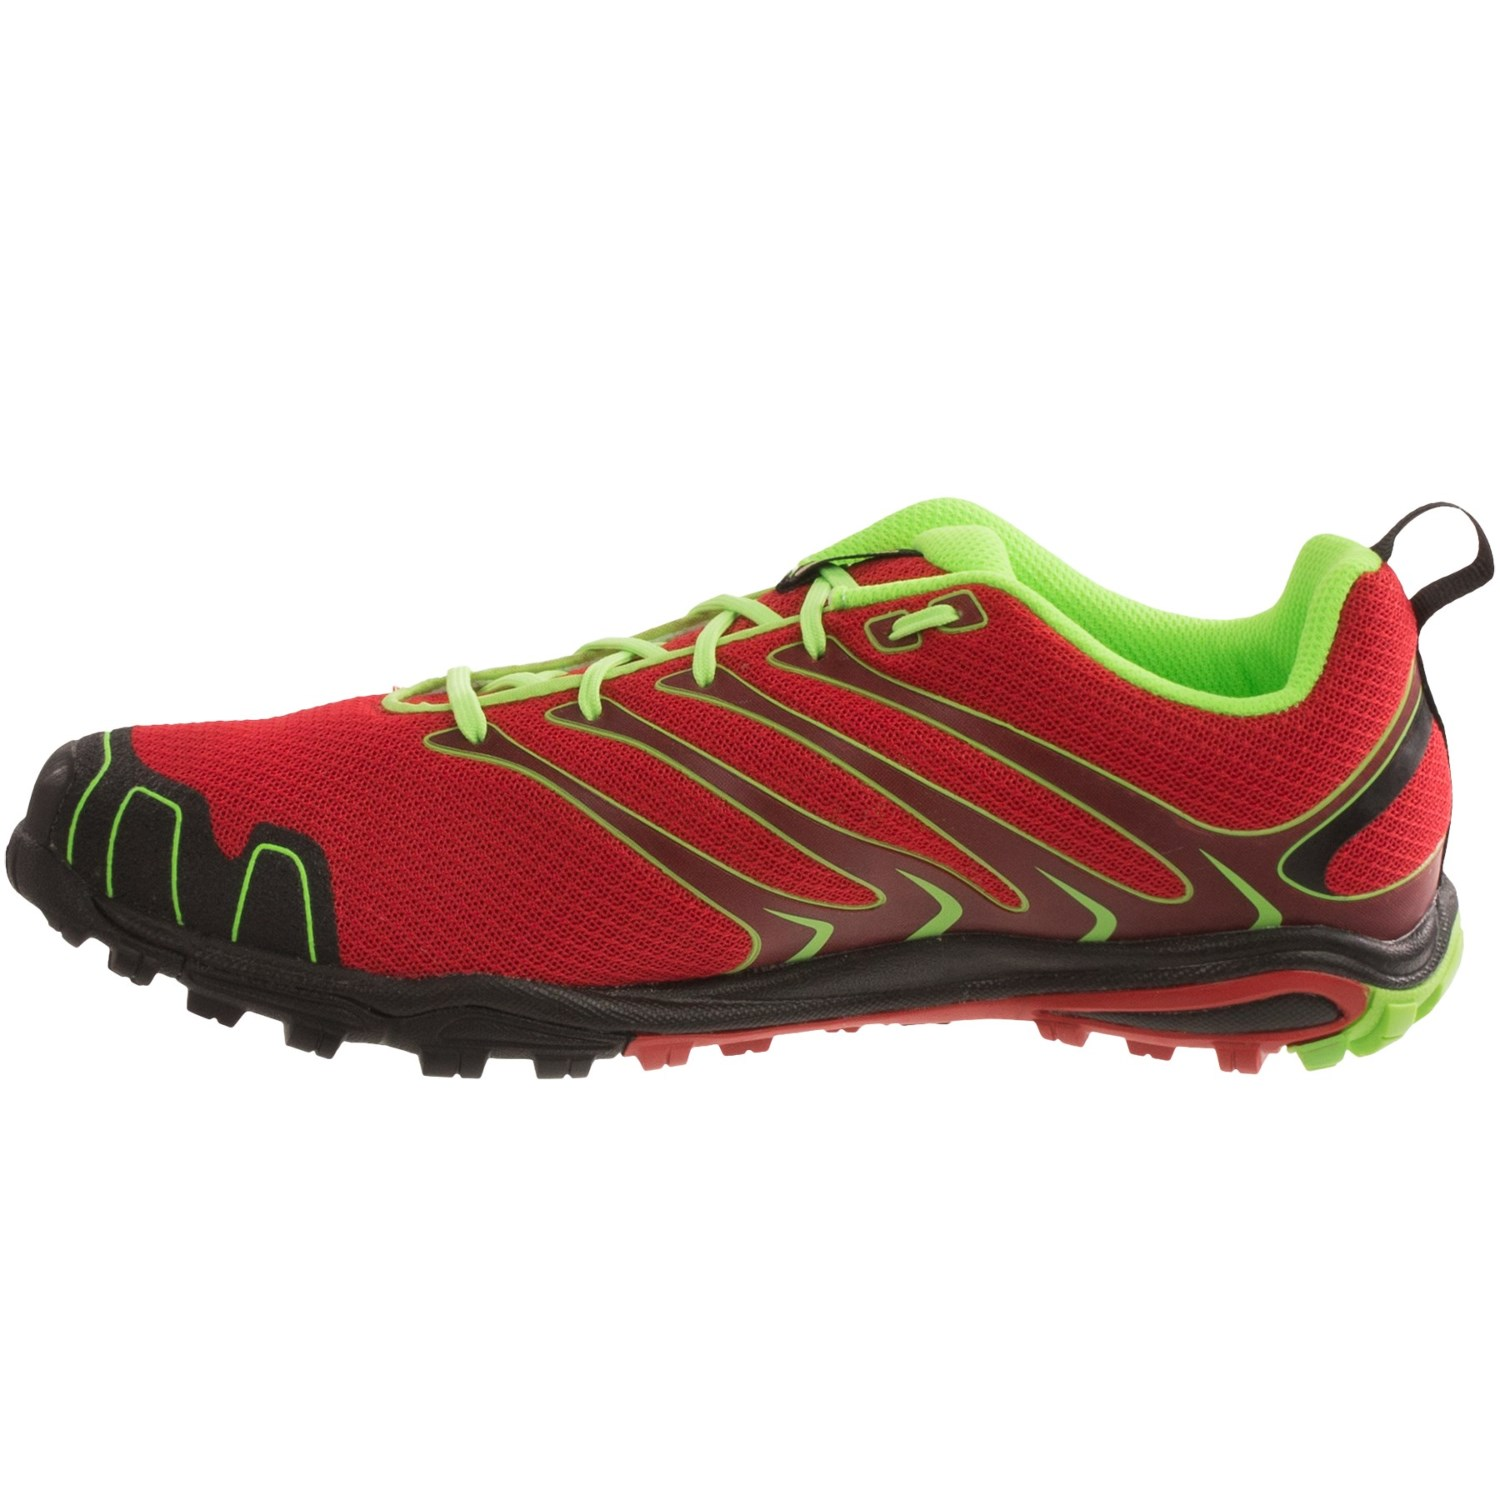 Inov  Trailroc  Trail Running Shoes Review